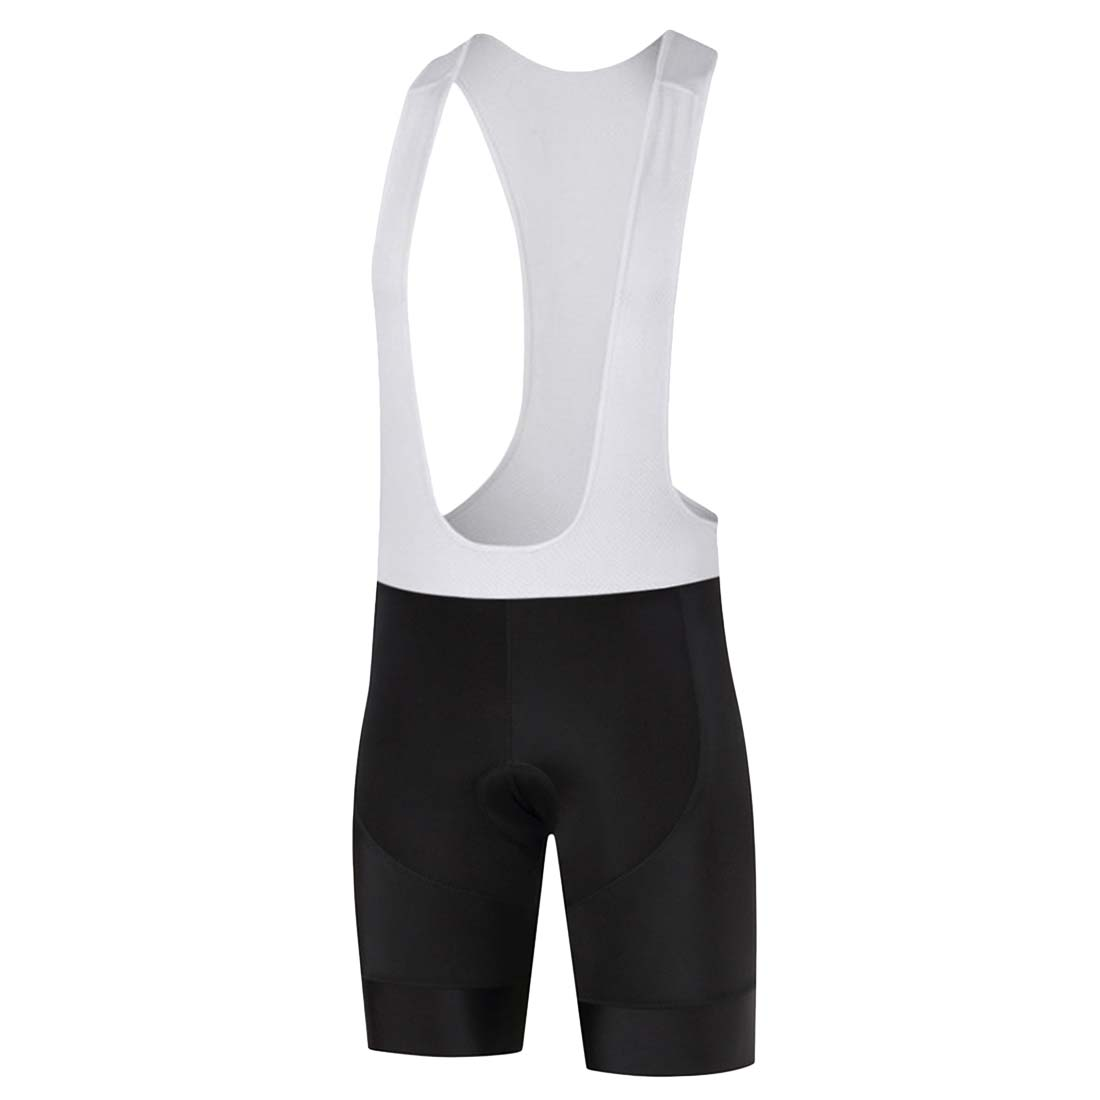 New Bicycle Accessories Cycling Pants Cycling Clothing Comfortable And Convenient Straps Shorts Breathable Absorbent